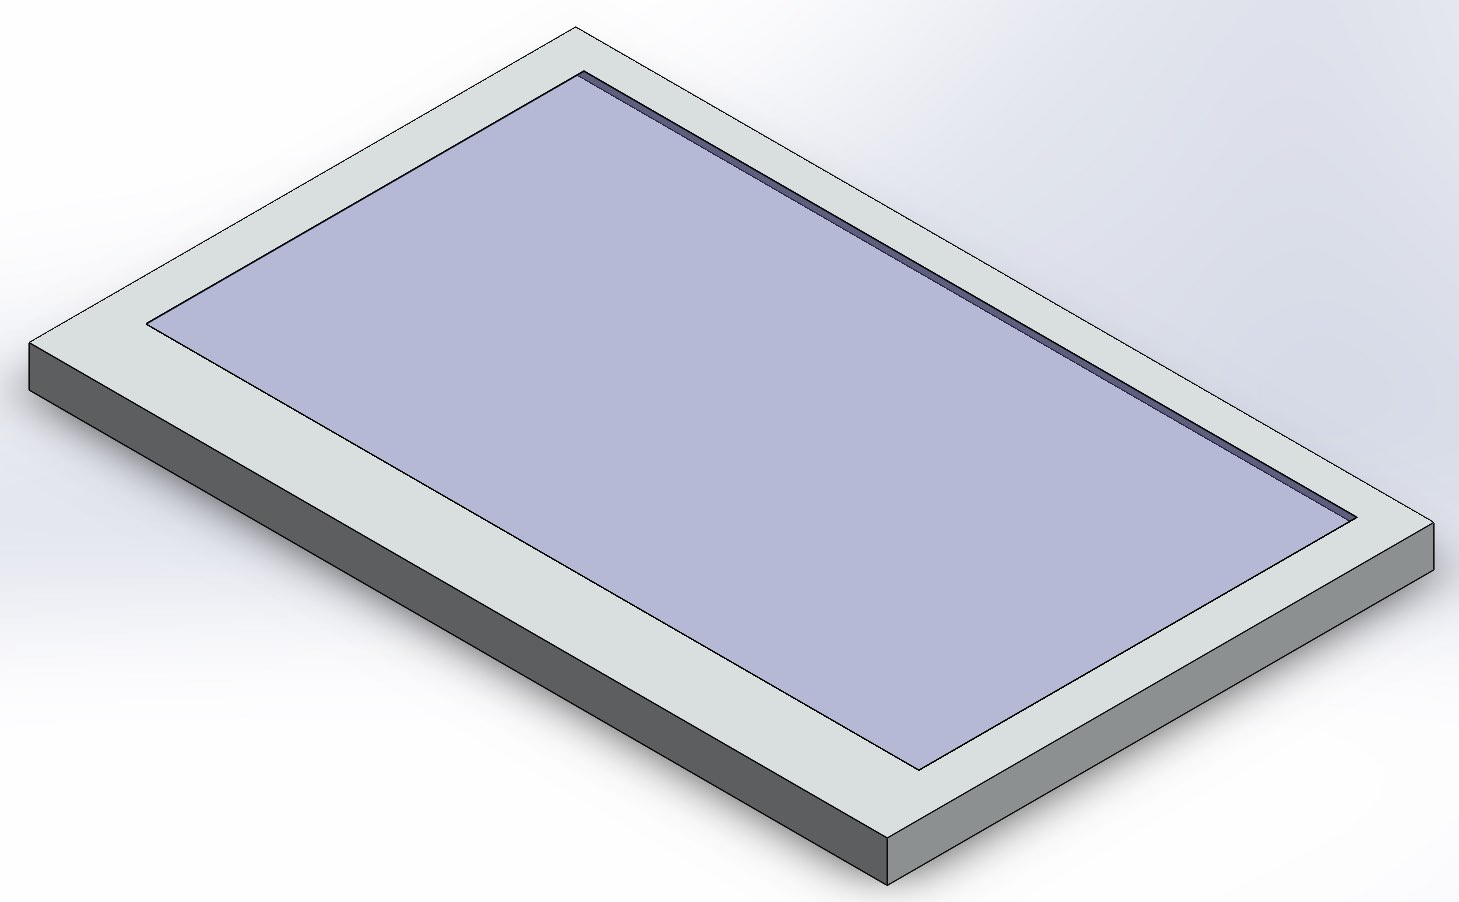 Model of the Gameslab LCD part